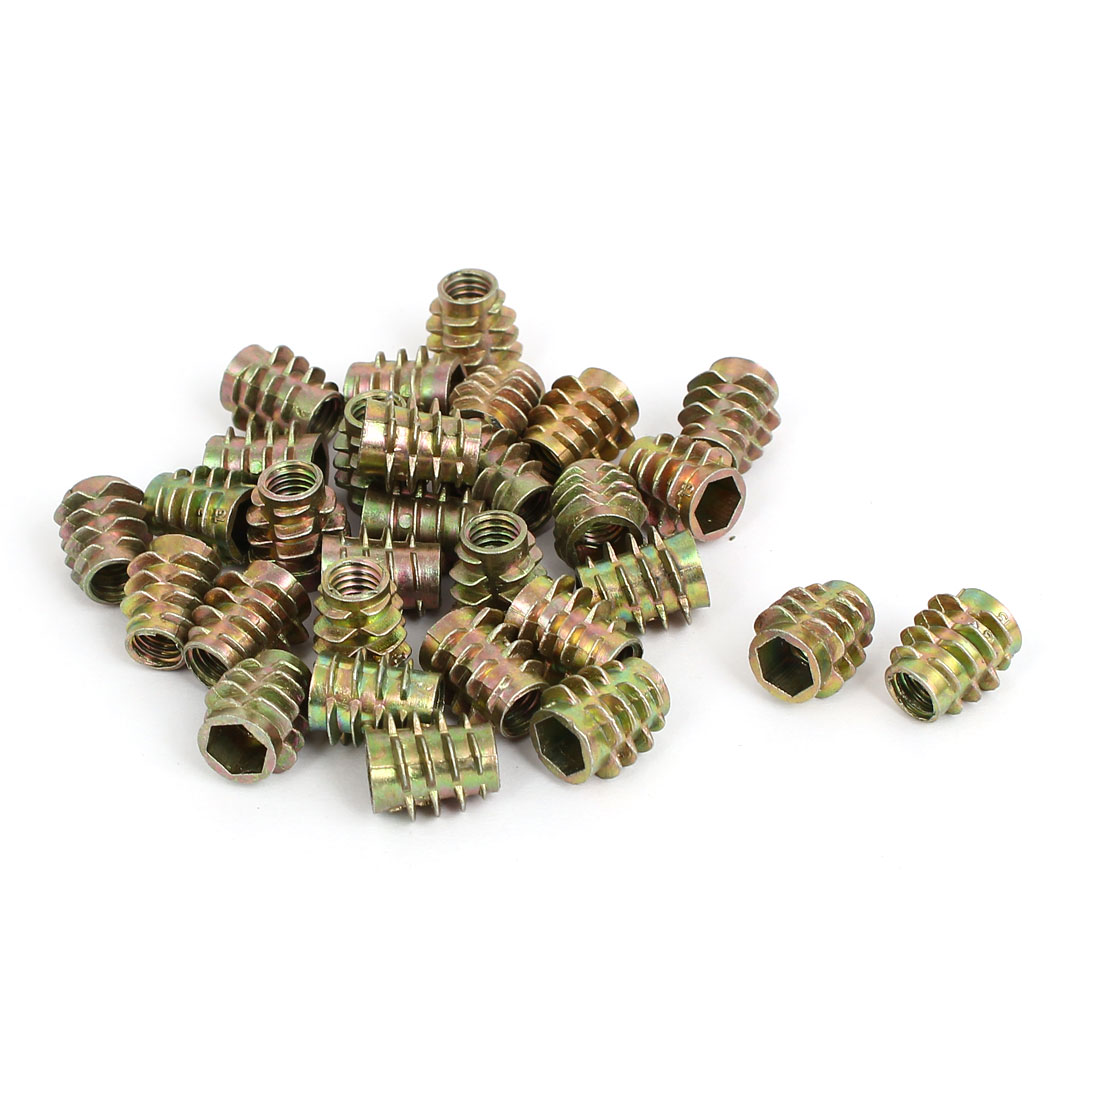 M6x13mm Zinc Plated Hex Socket Screw in Thread Insert Nut 30pcs for Wood